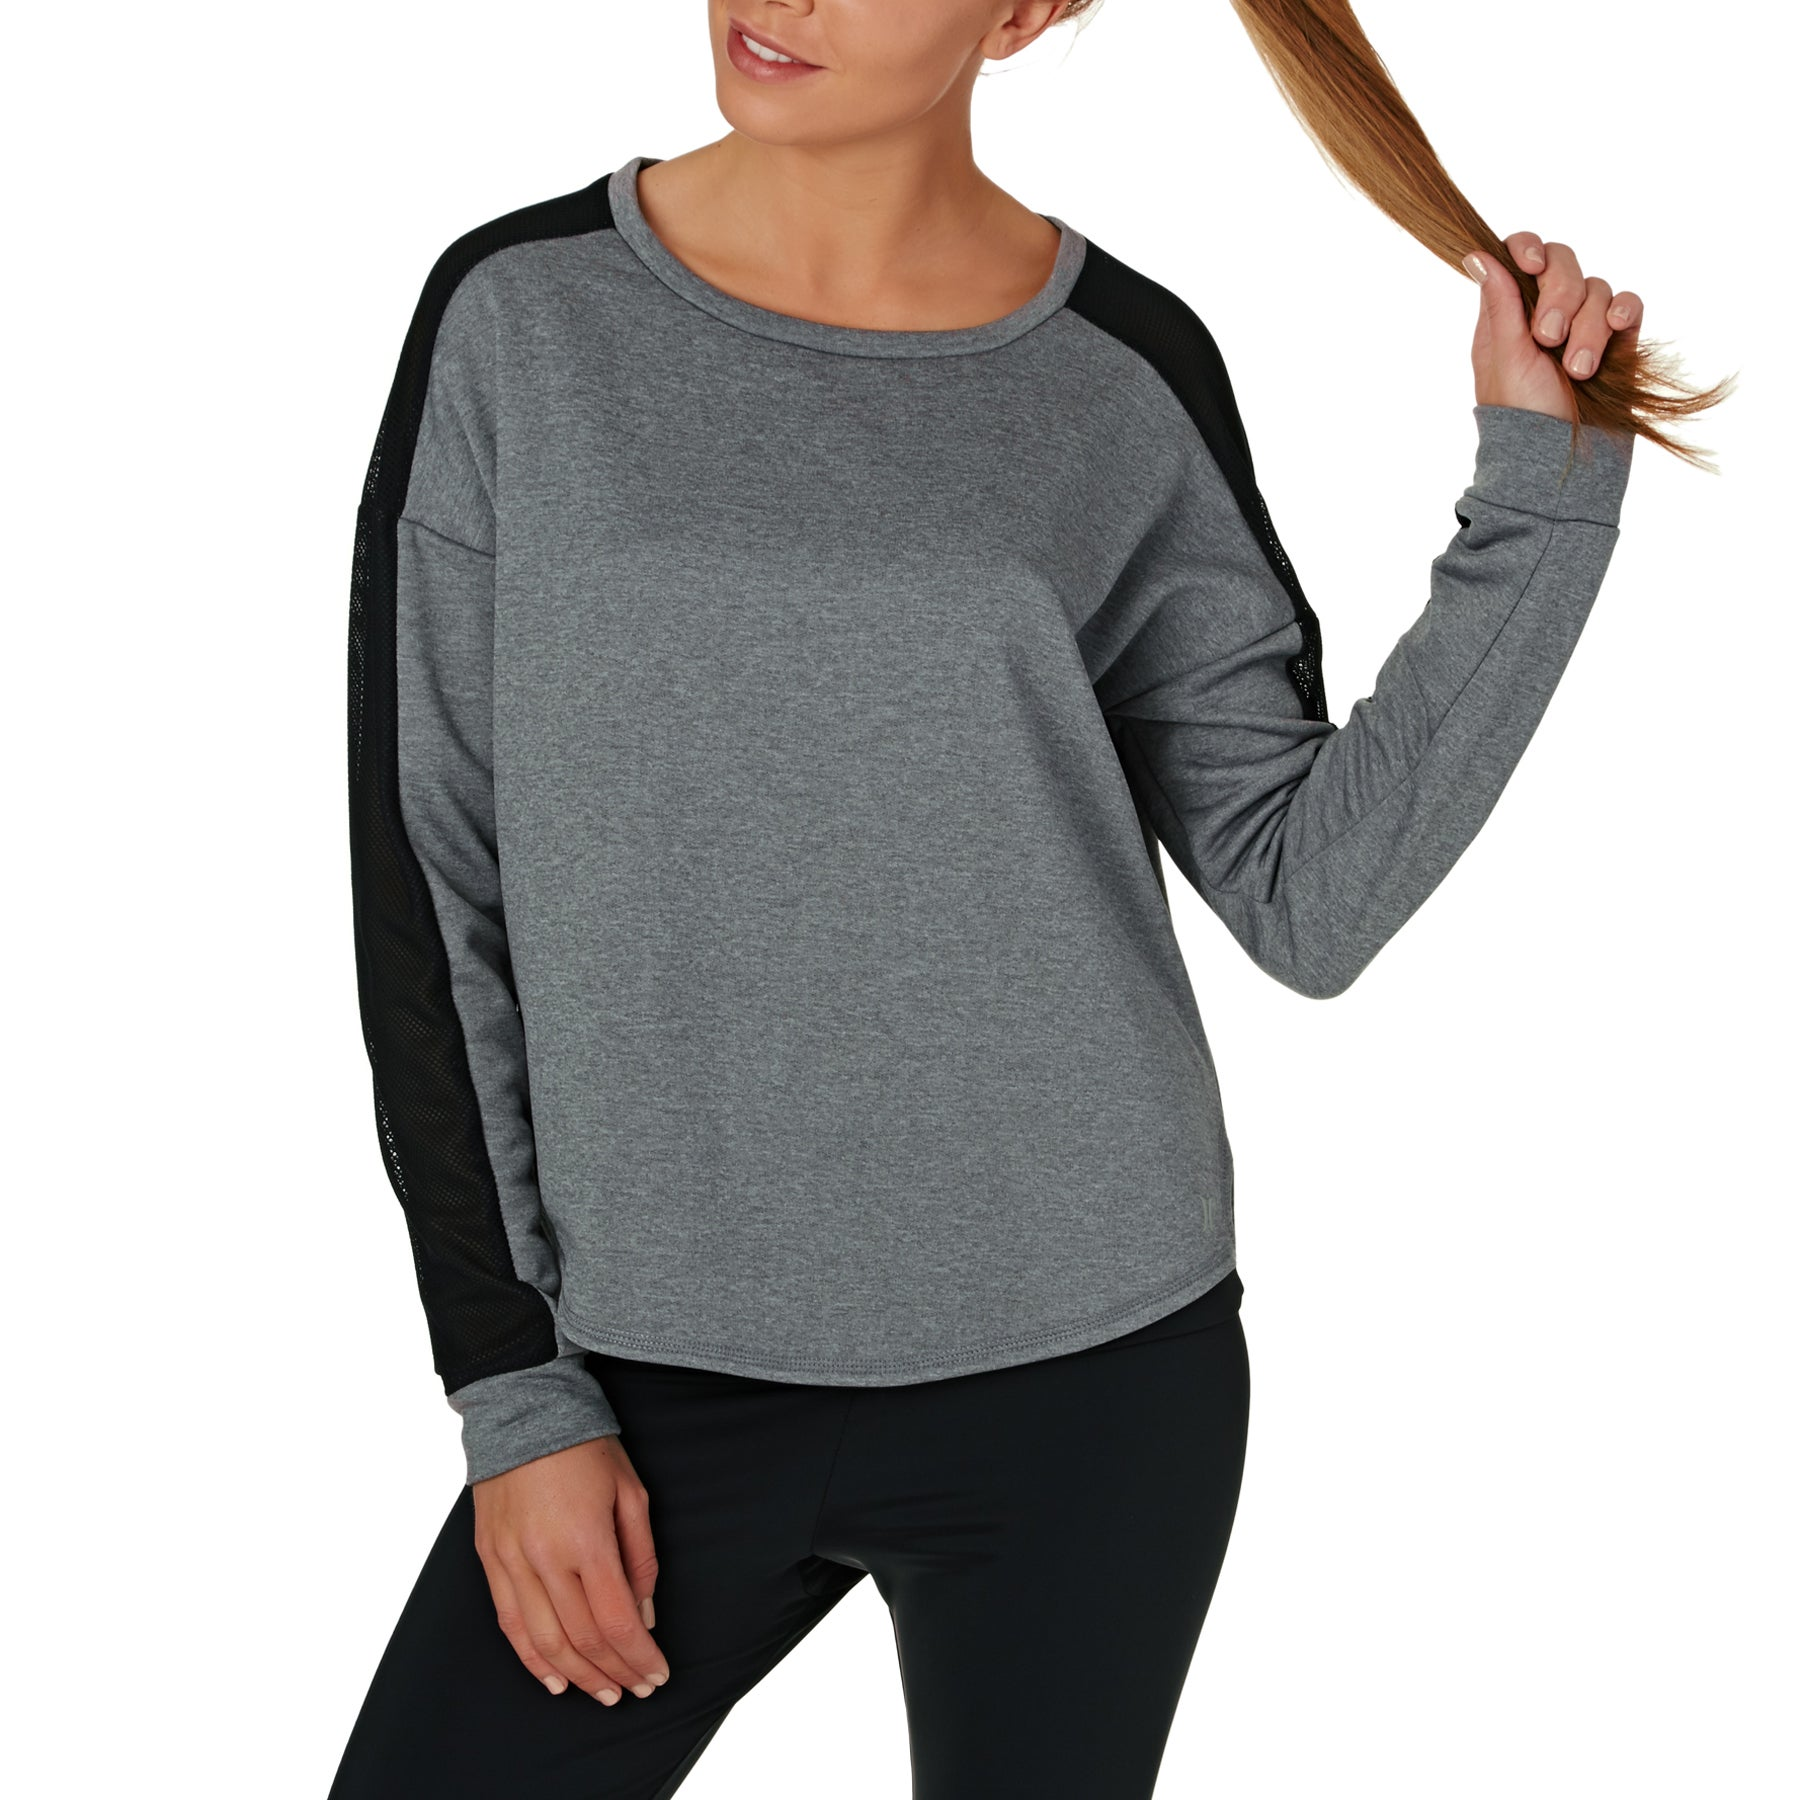 Hurley Dri Fit United Crew Ladies Sweater